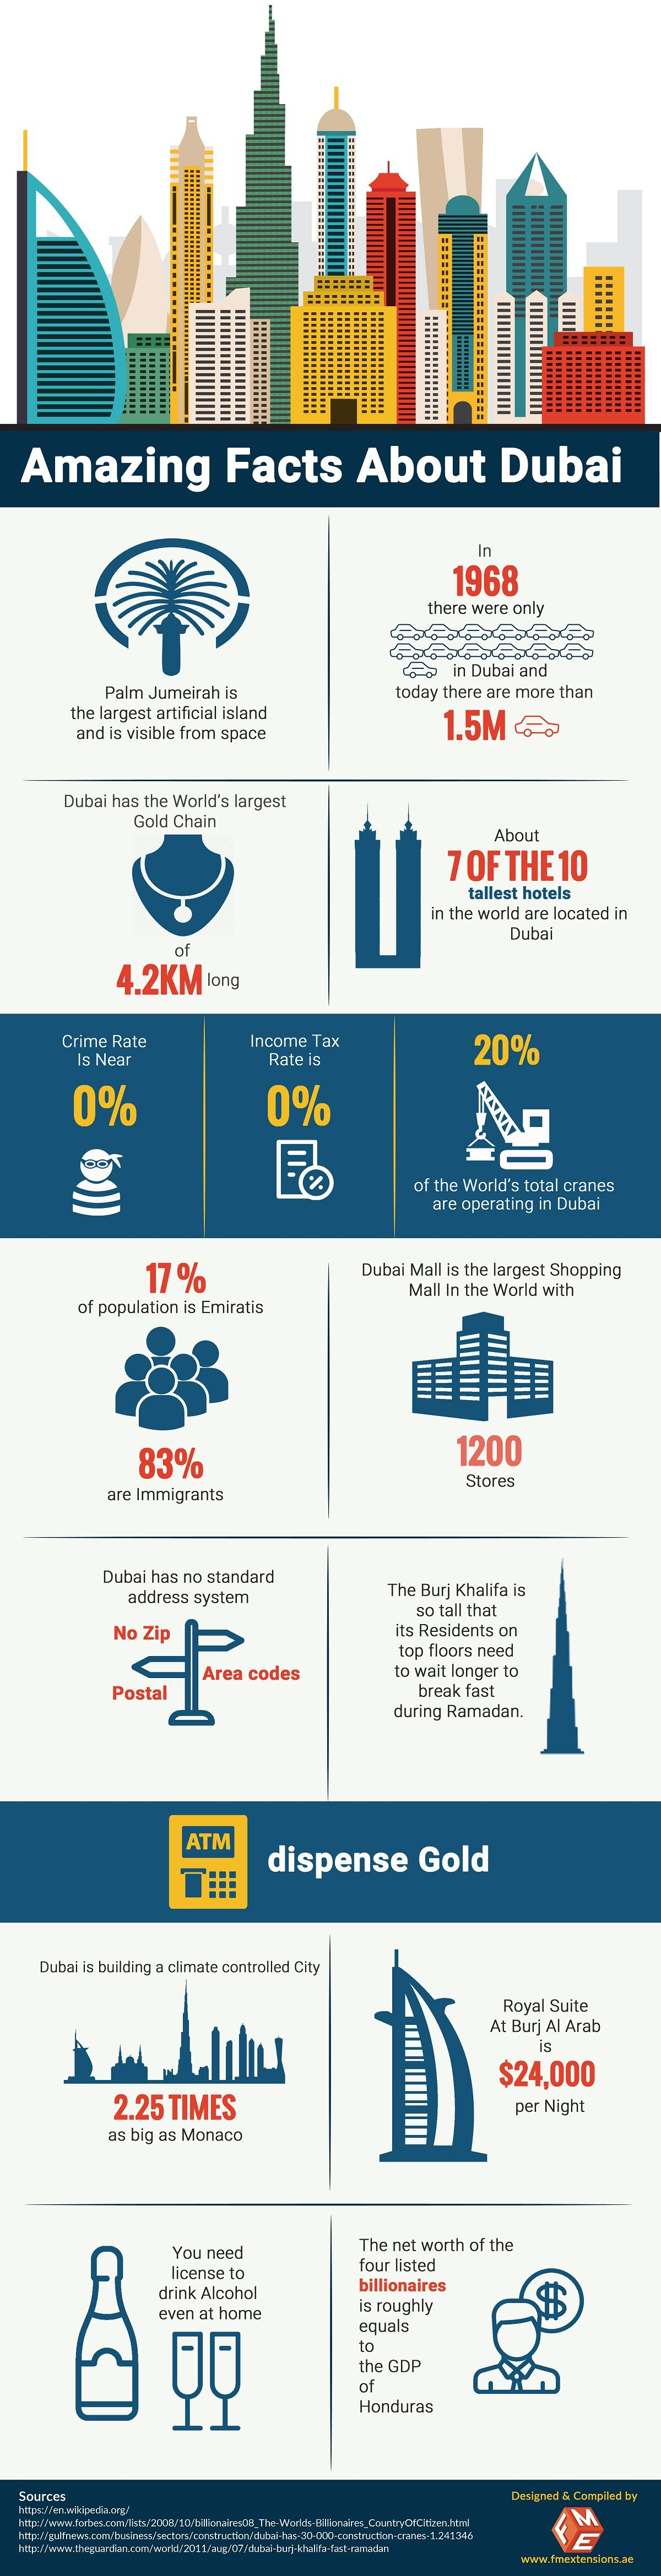 16 Amazing Facts About Dubai Infographic Travel Infographic